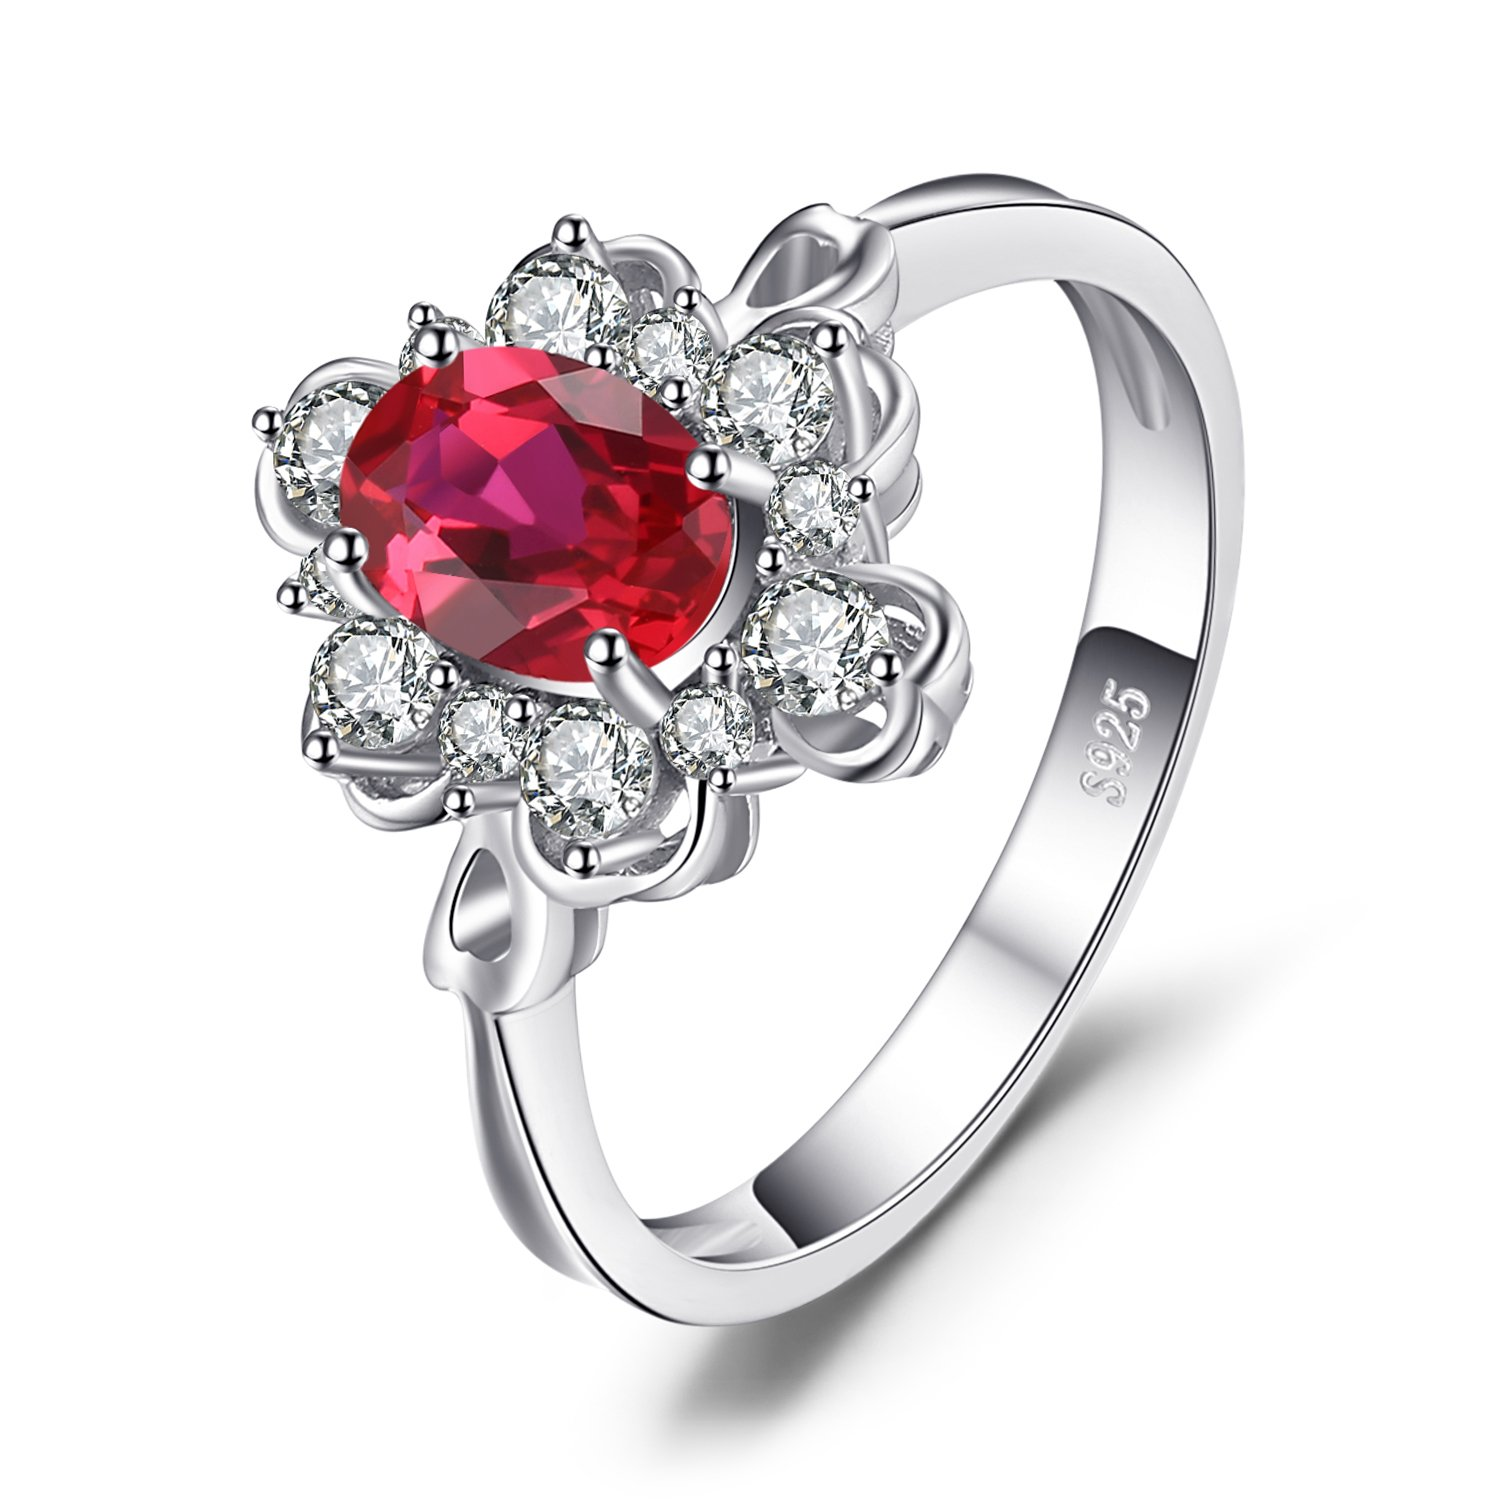 JewelryPalace Elegant 1ct Oval Created Red Ruby Engagement Anniversary Promise Ring 925 Sterling Silver Size 6